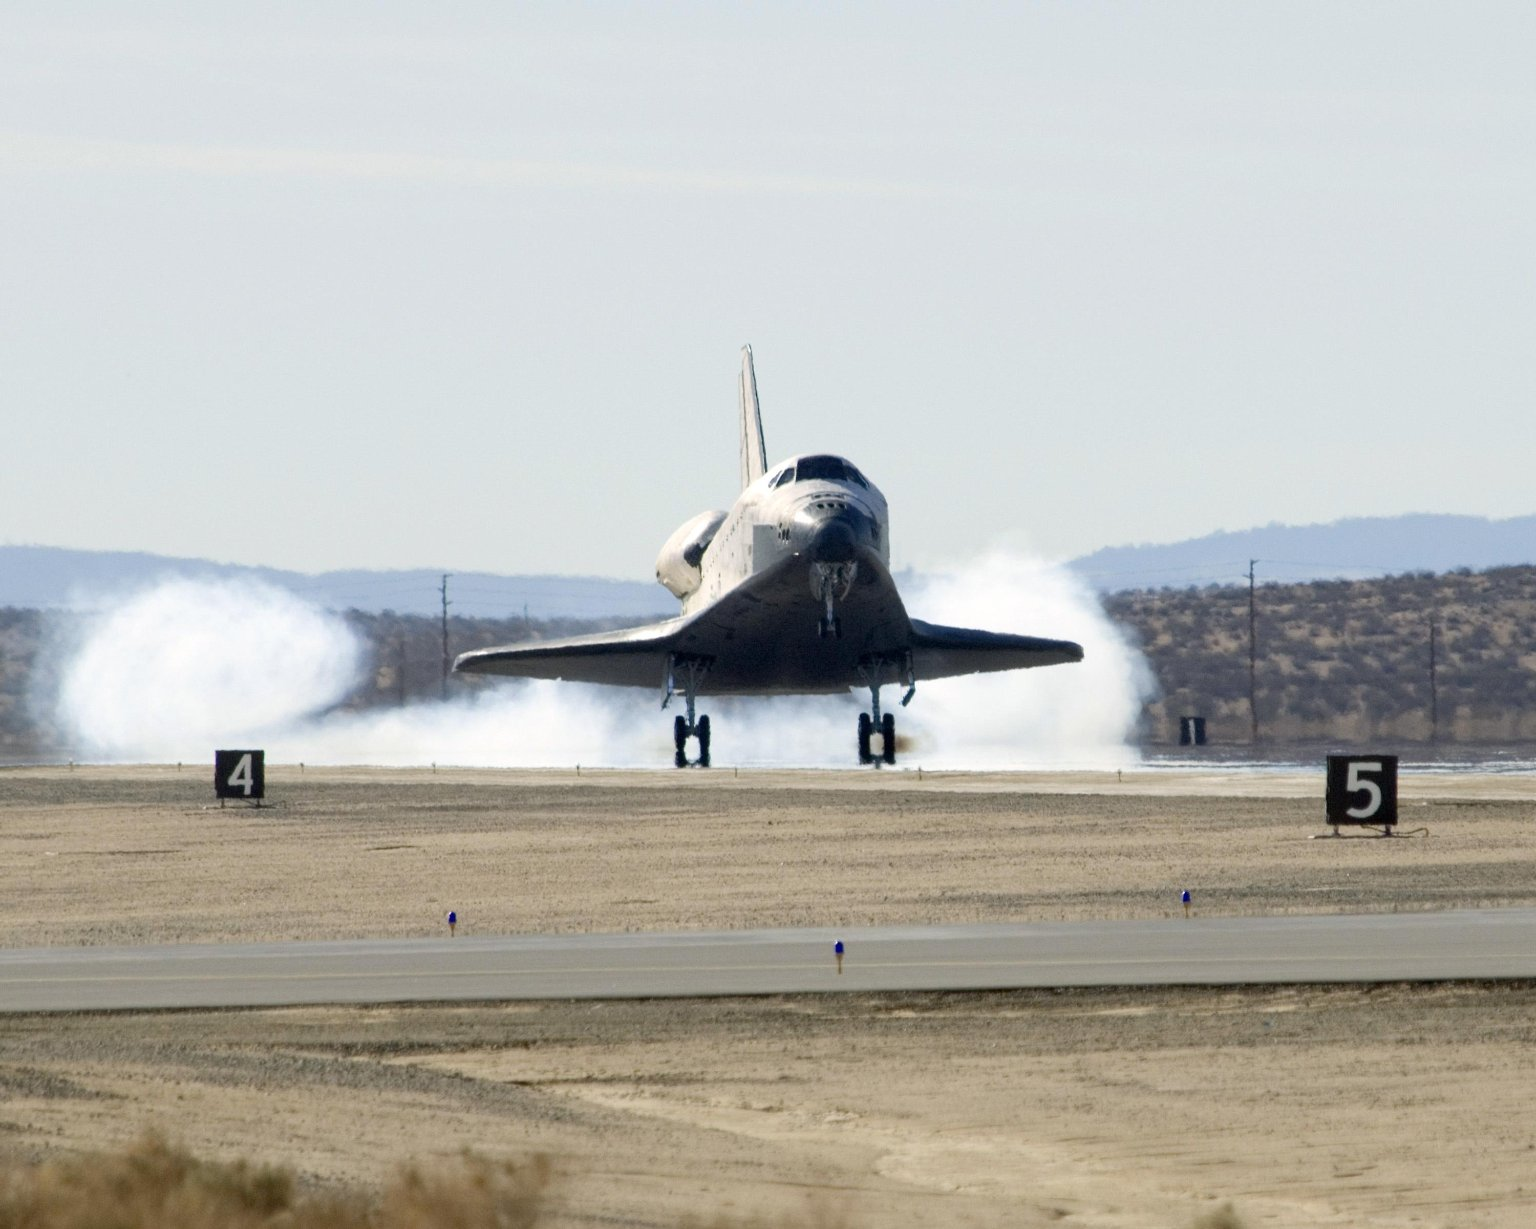 Welcome Back, Endeavour